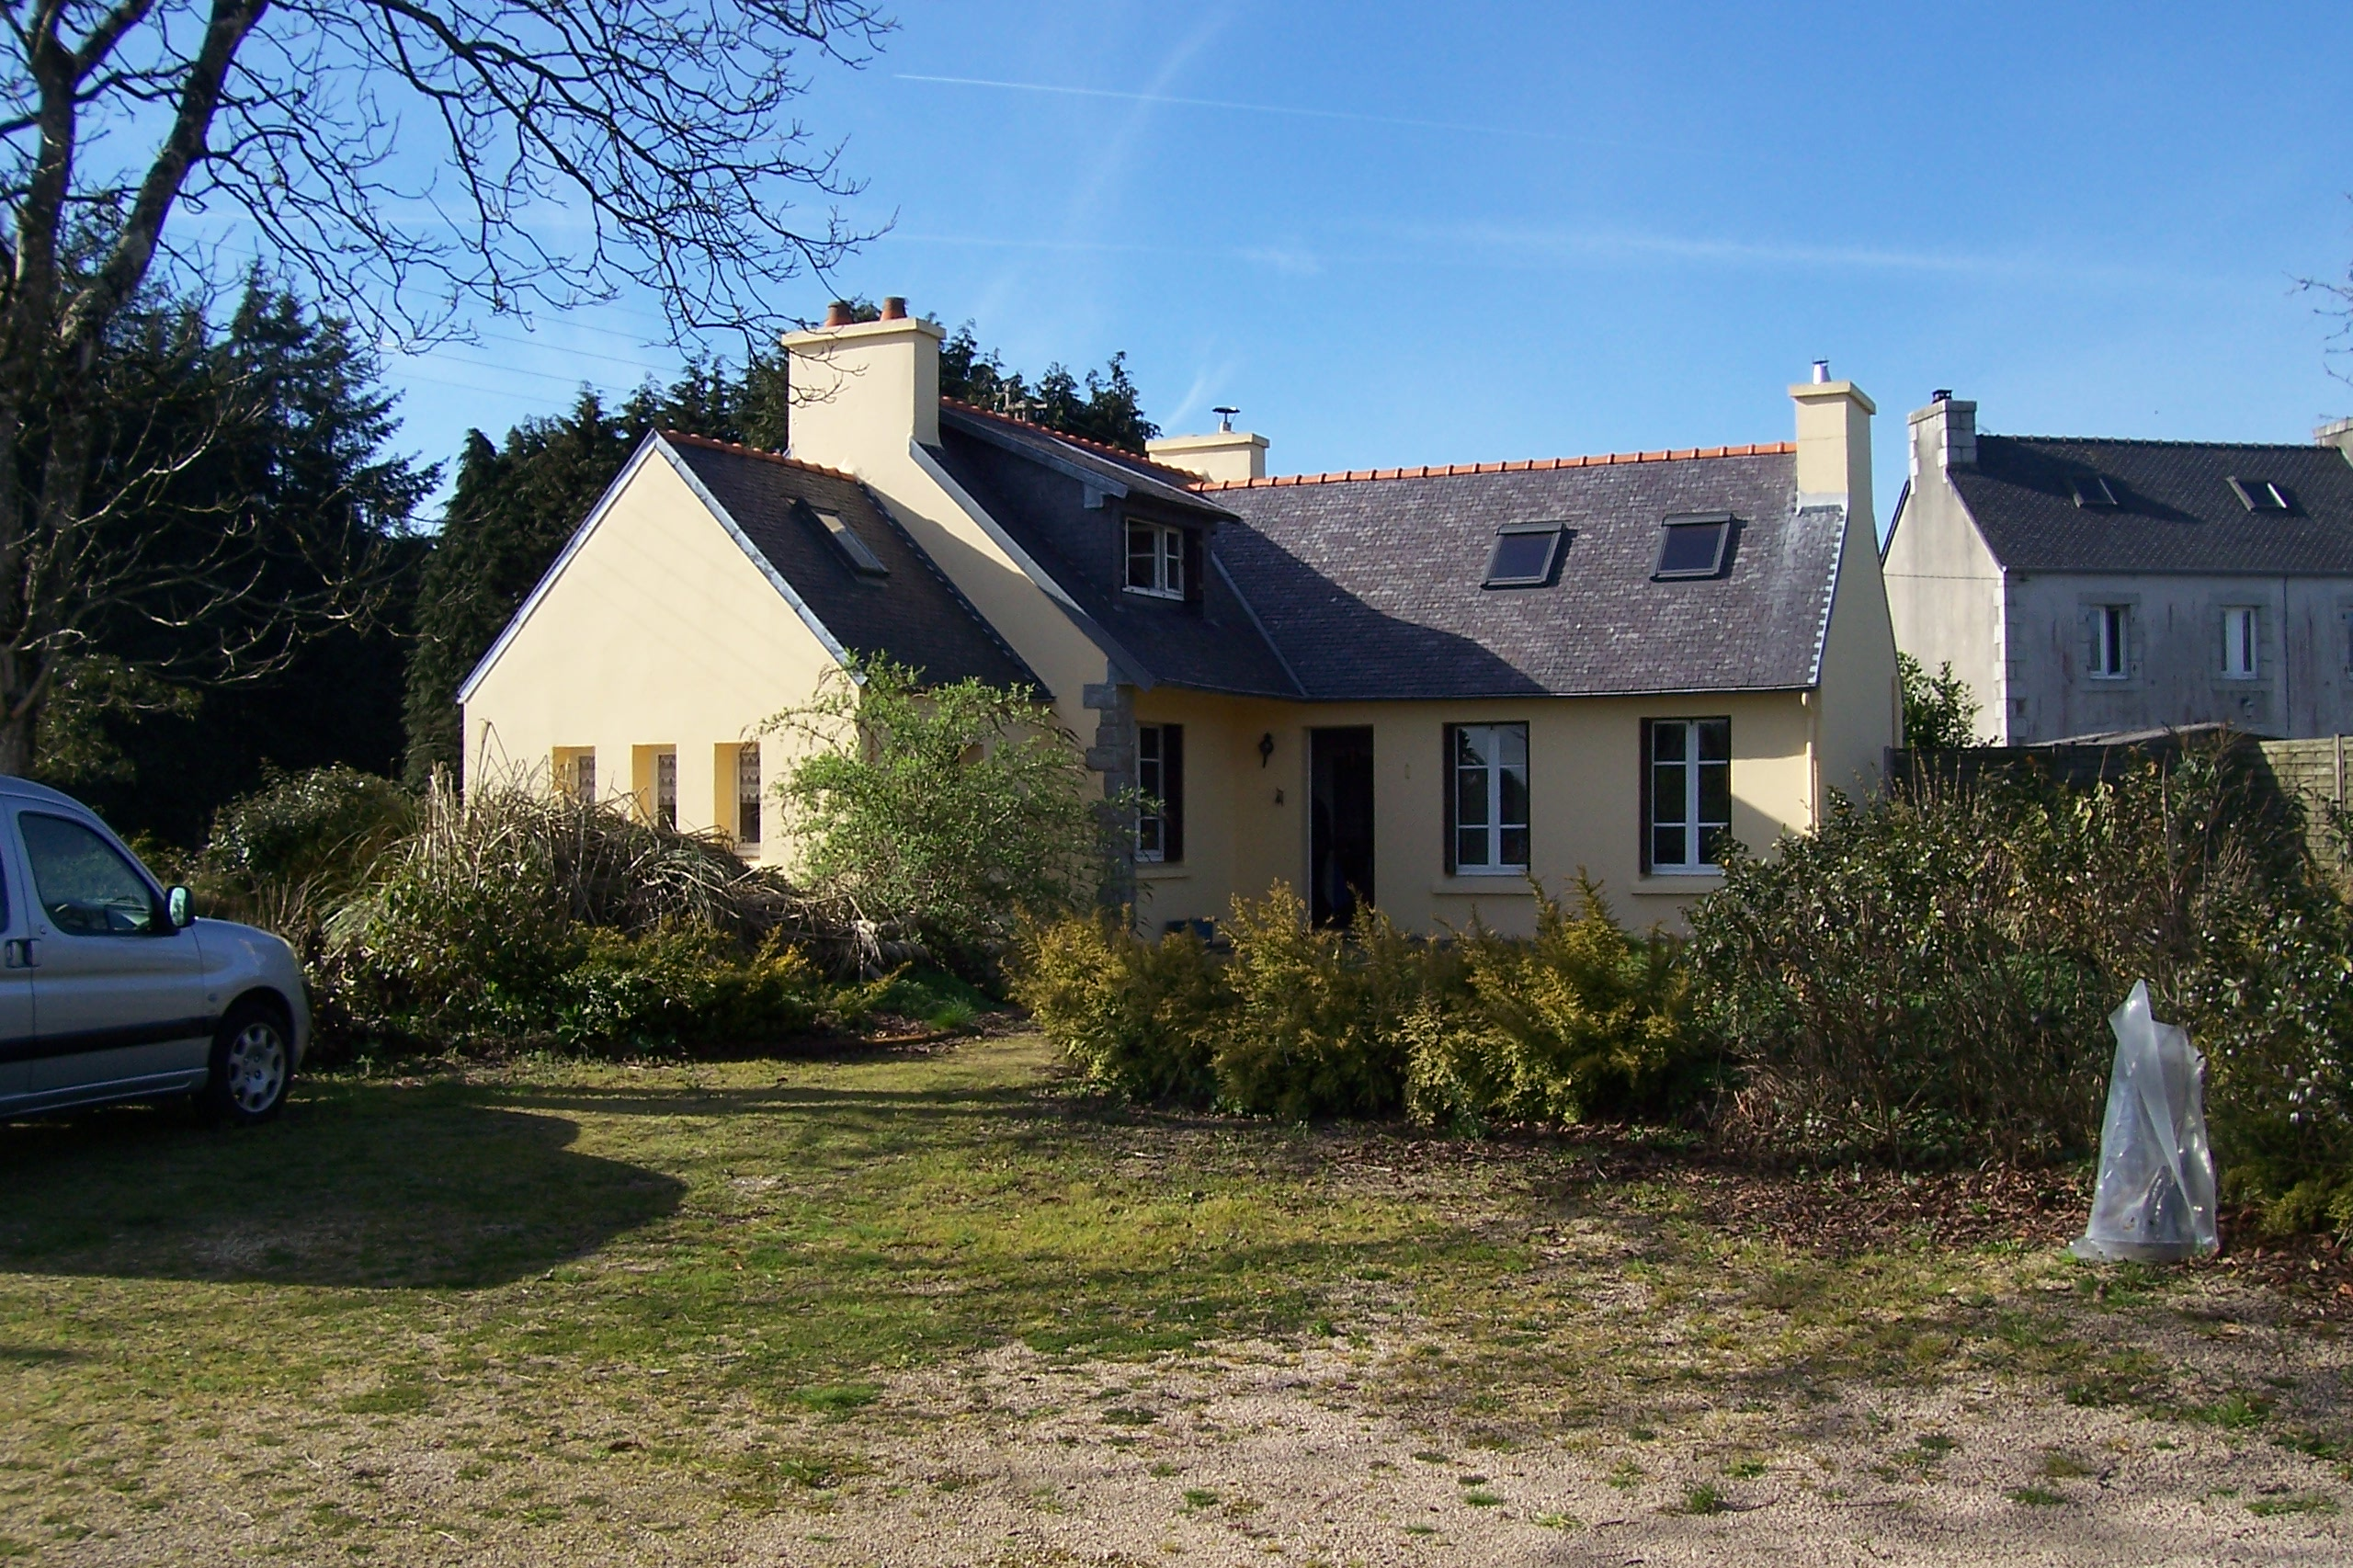 Brittany Property for sale - nglish Speaking gents in Brittany ...